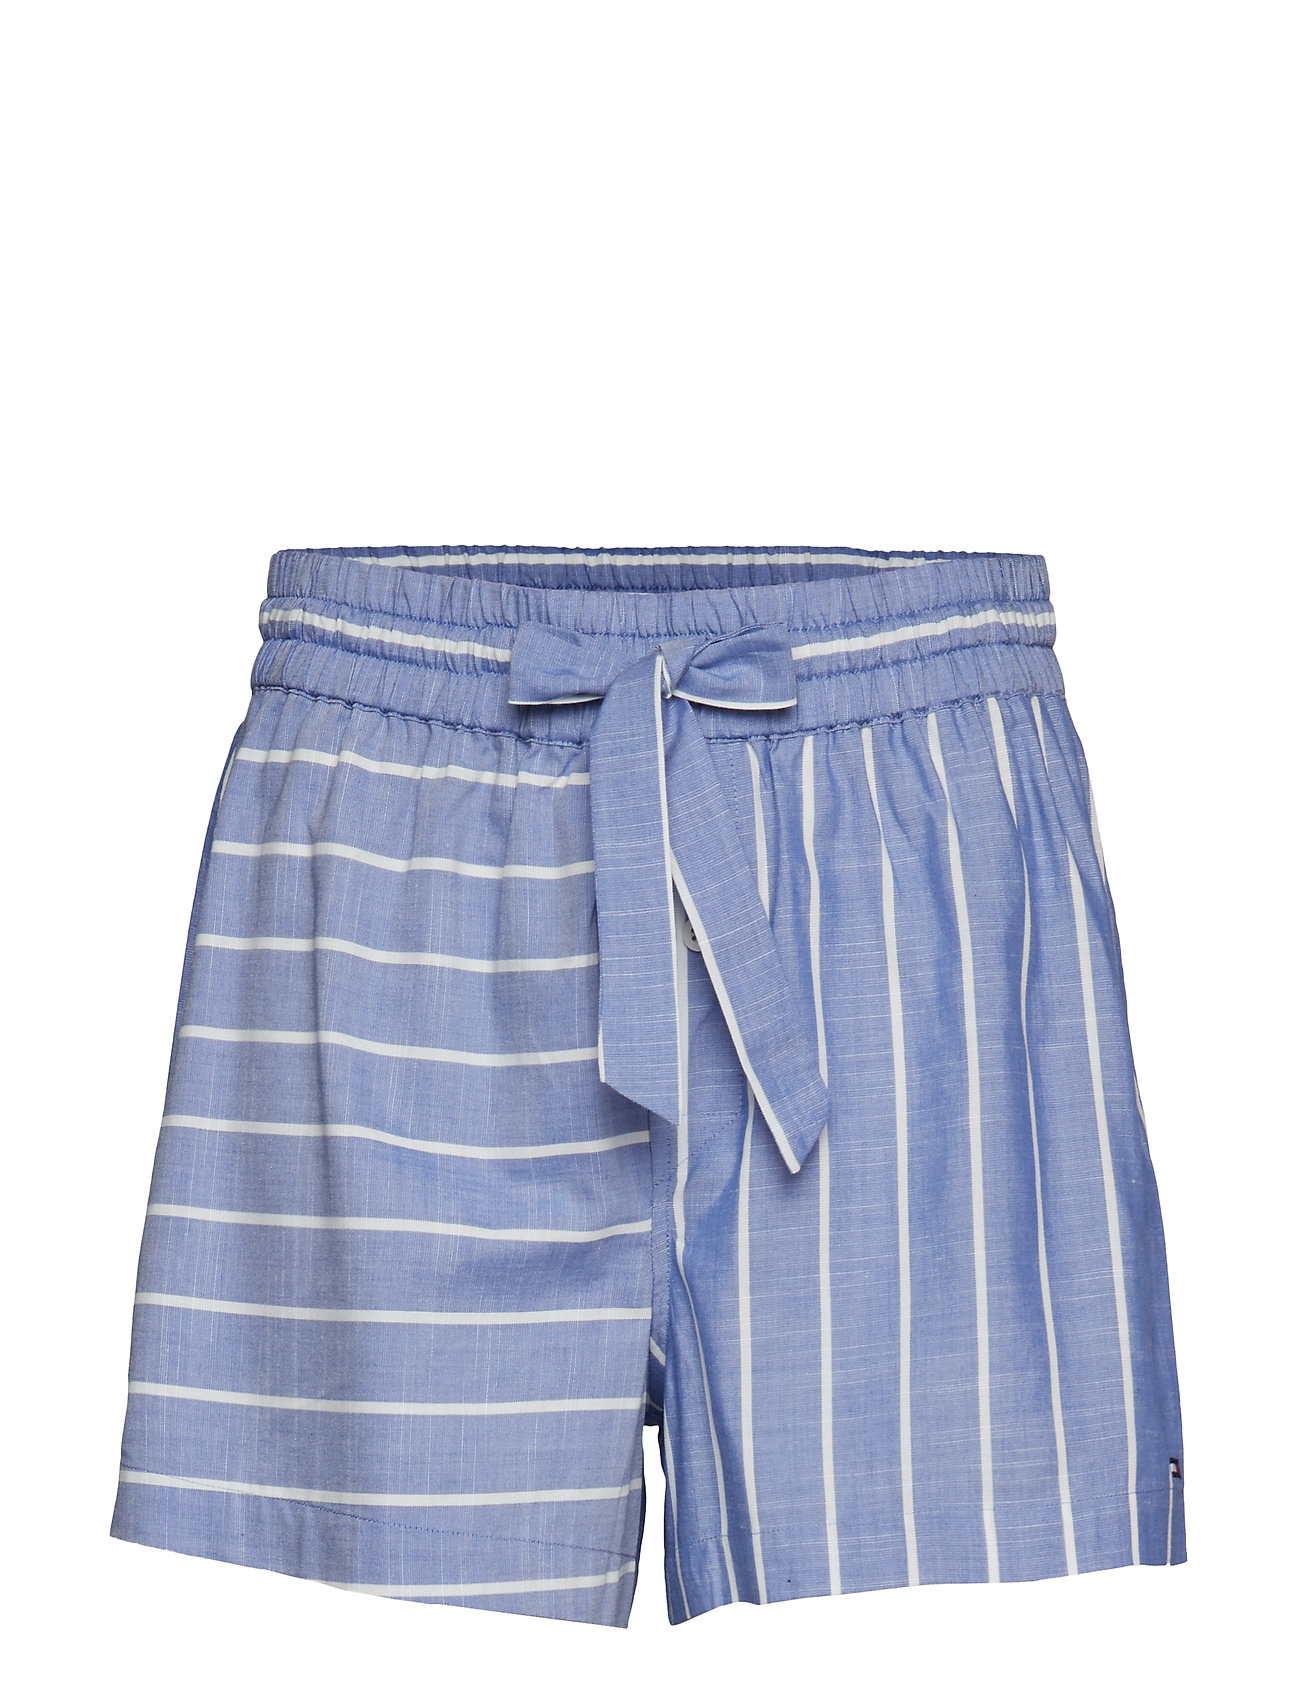 Tommy Hilfiger SHORT STRIPE - GRAY DAWN